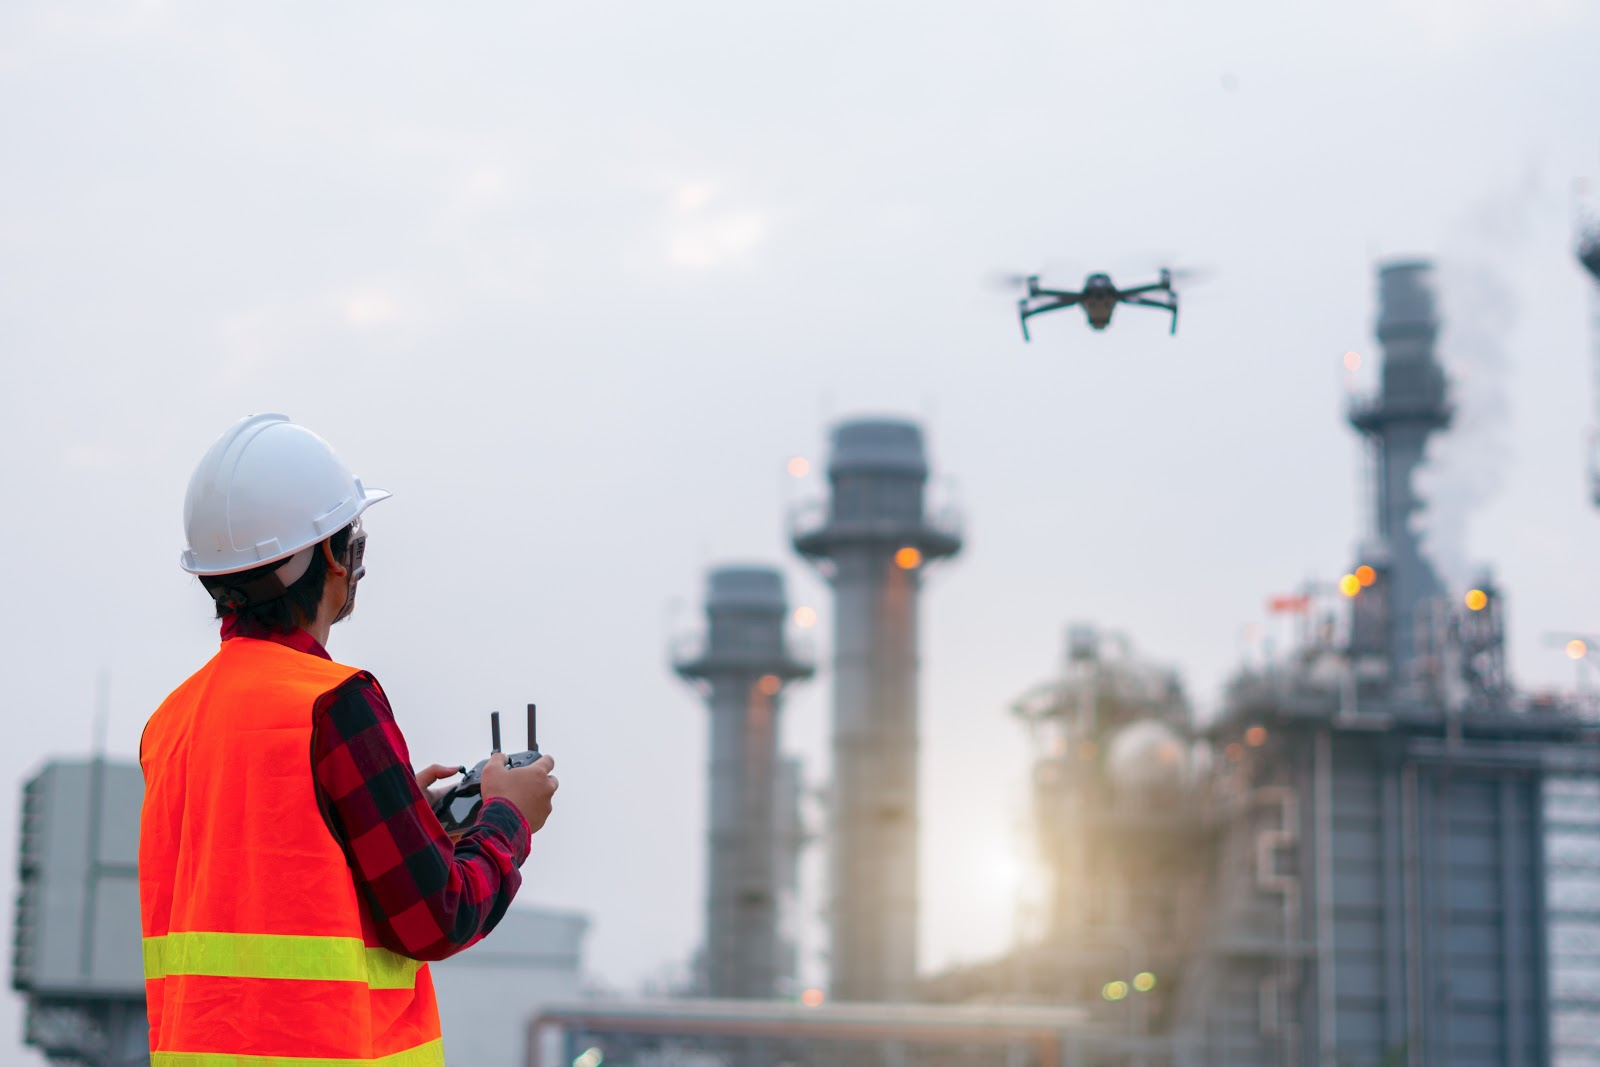 Commercial drone operator